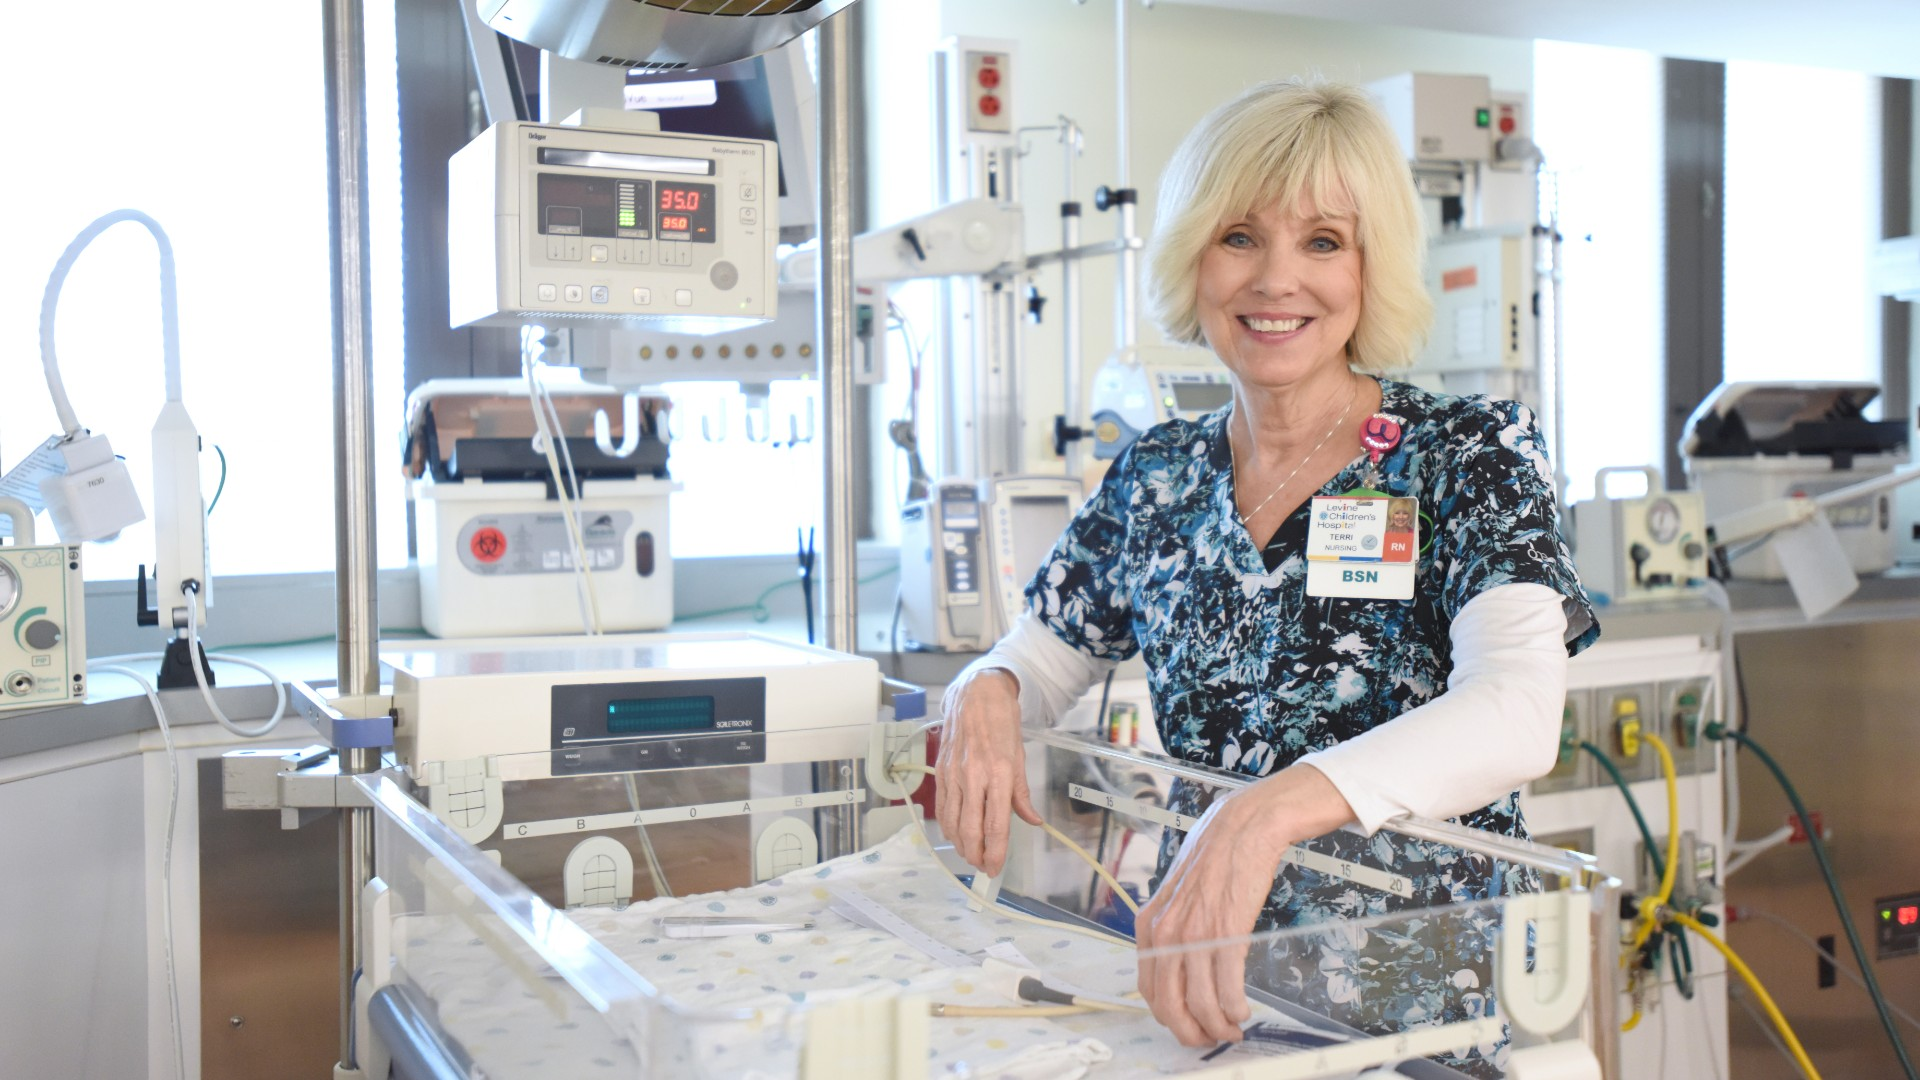 """Terri Richards, BSN, RN, at Atrium Health's Levine Children's Hospital, has spent more than 40 years as a nurse. """"It's not been a career, it's a calling for me,"""" Richards says."""